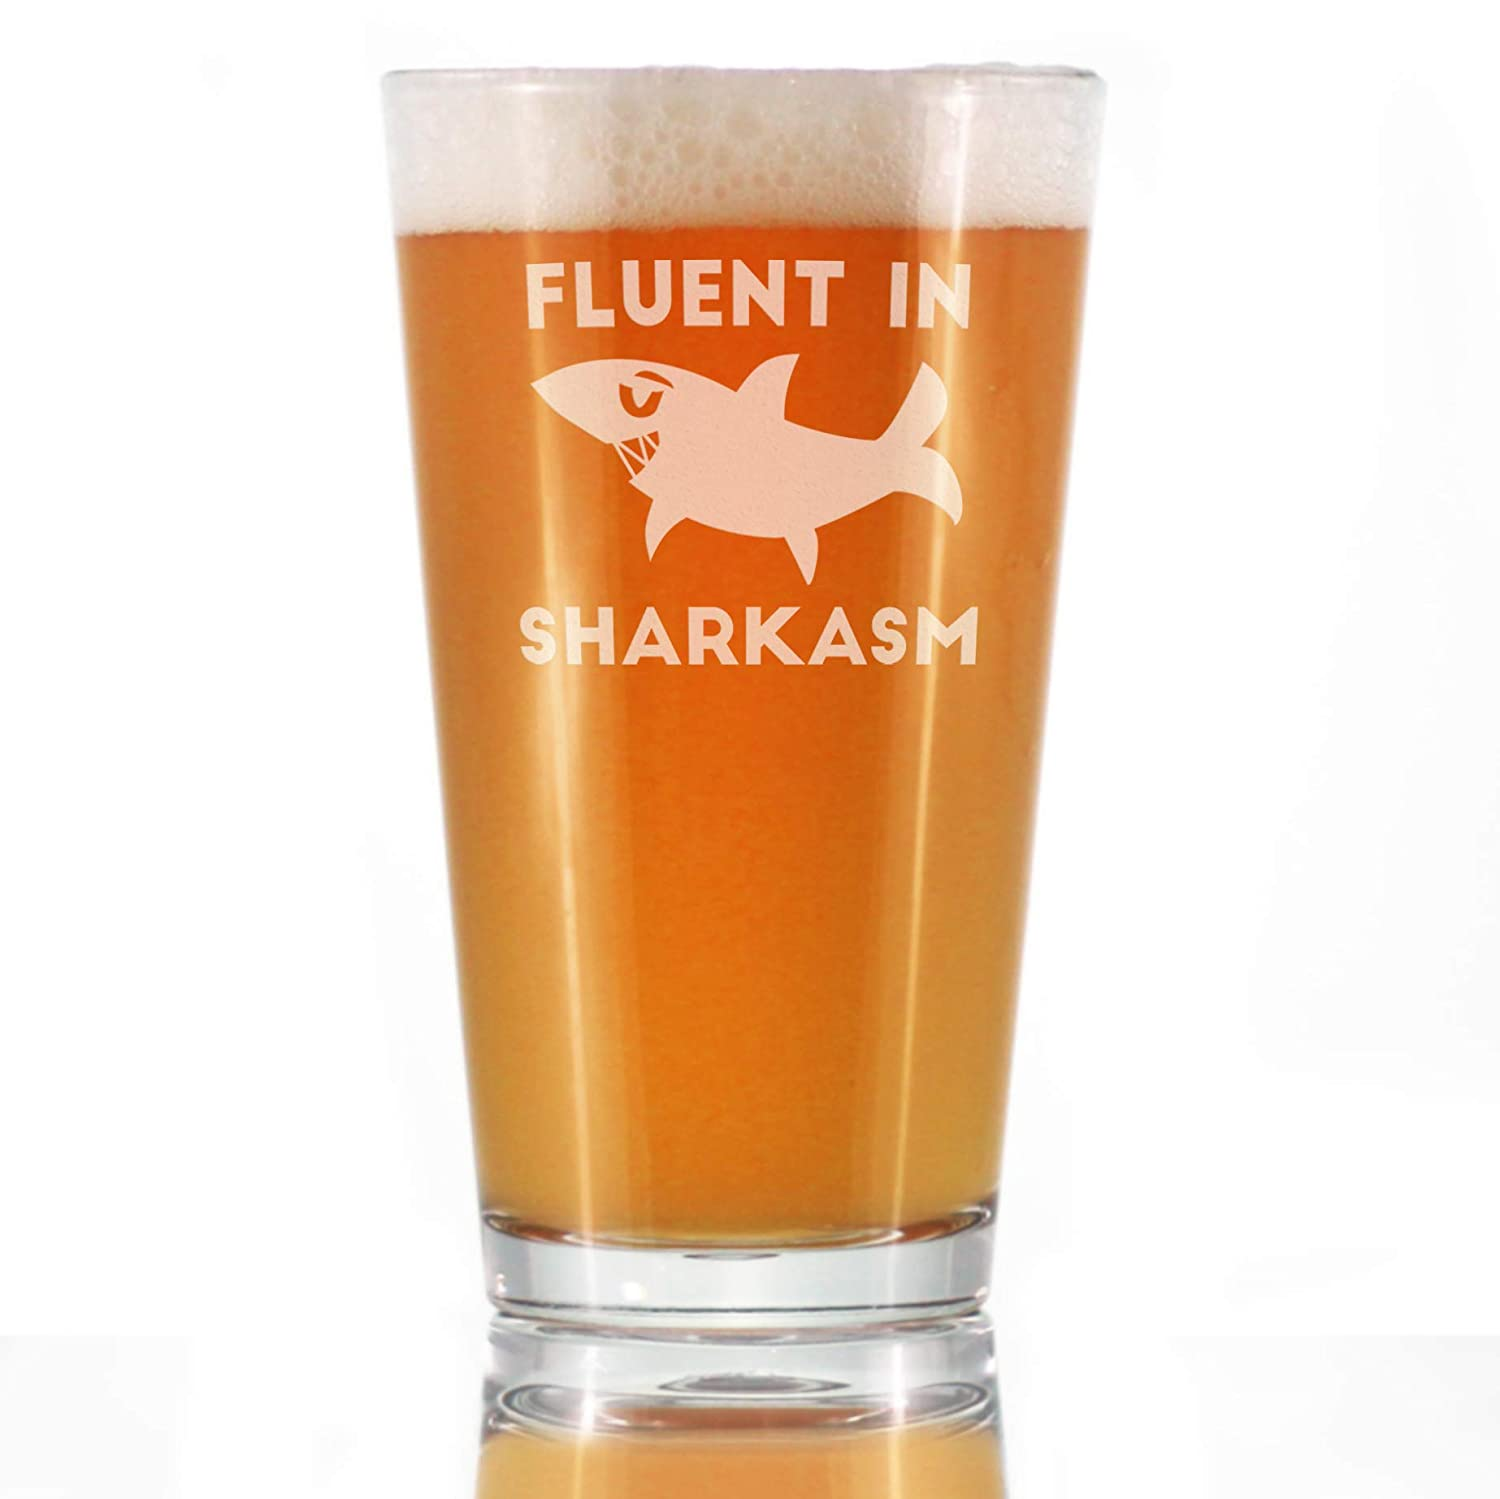 Fluent in Sharkasm - Funny Shark Pint Glass Gifts for Beer Drinking Men & Women - Fun Unique Sharks Decor